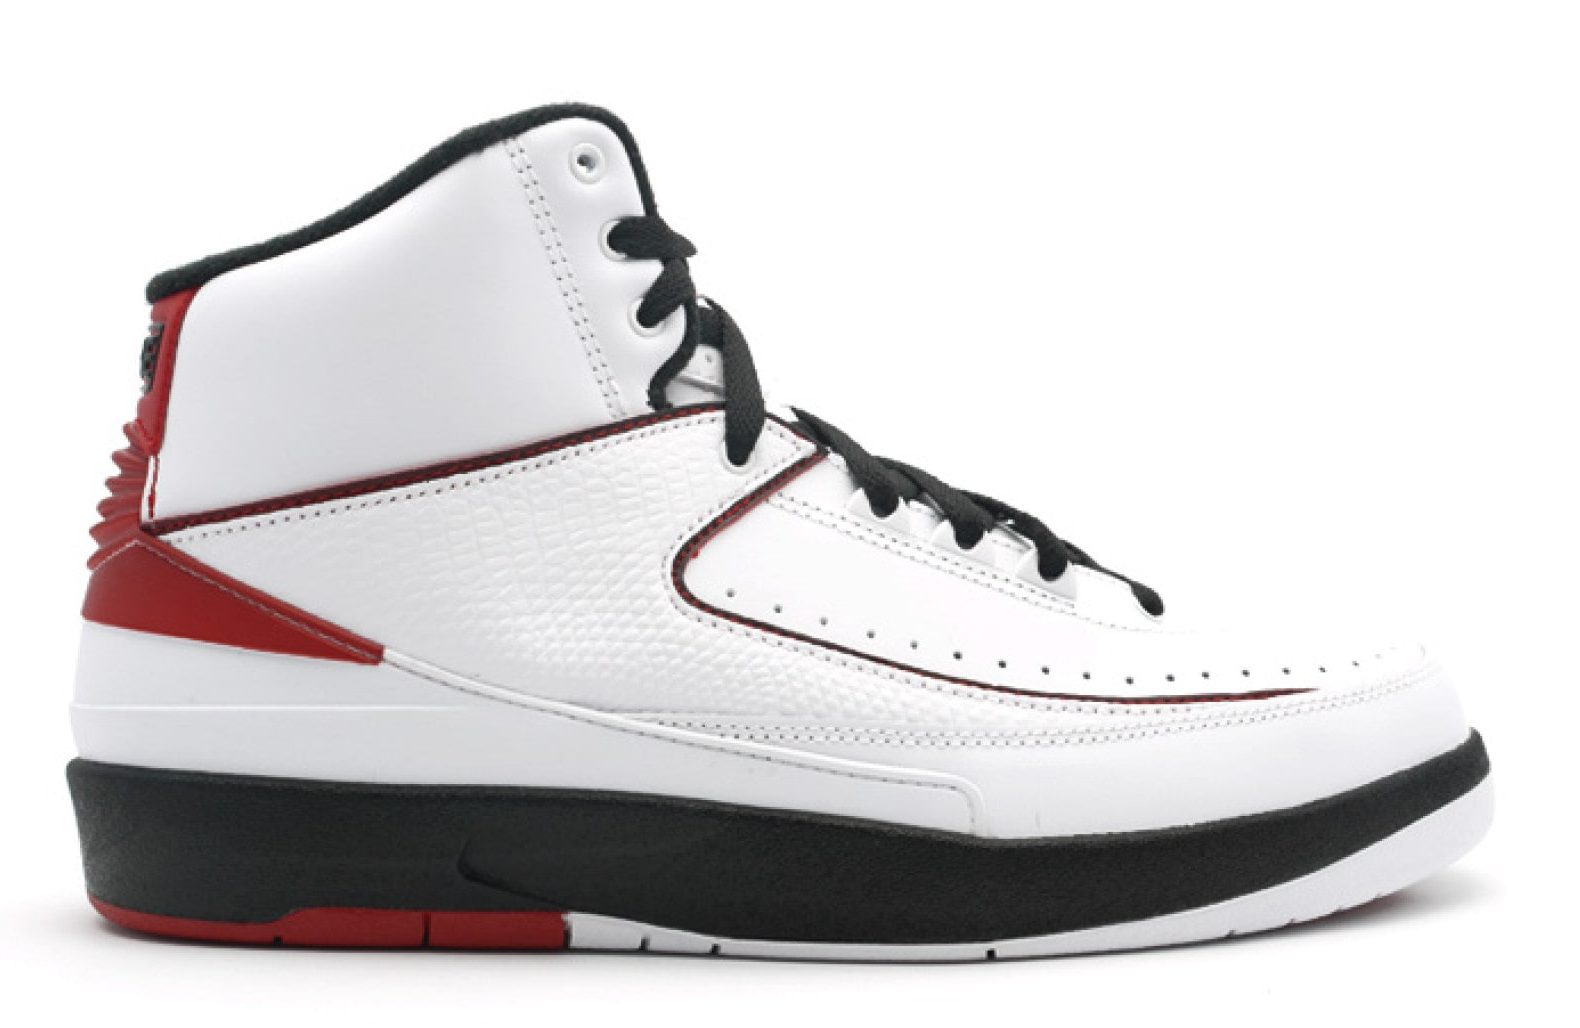 half off bb8ac 2a3b8 Ranking Every Air Jordan From 1 to 33 - HOUSE OF HEAT   Sneaker ...